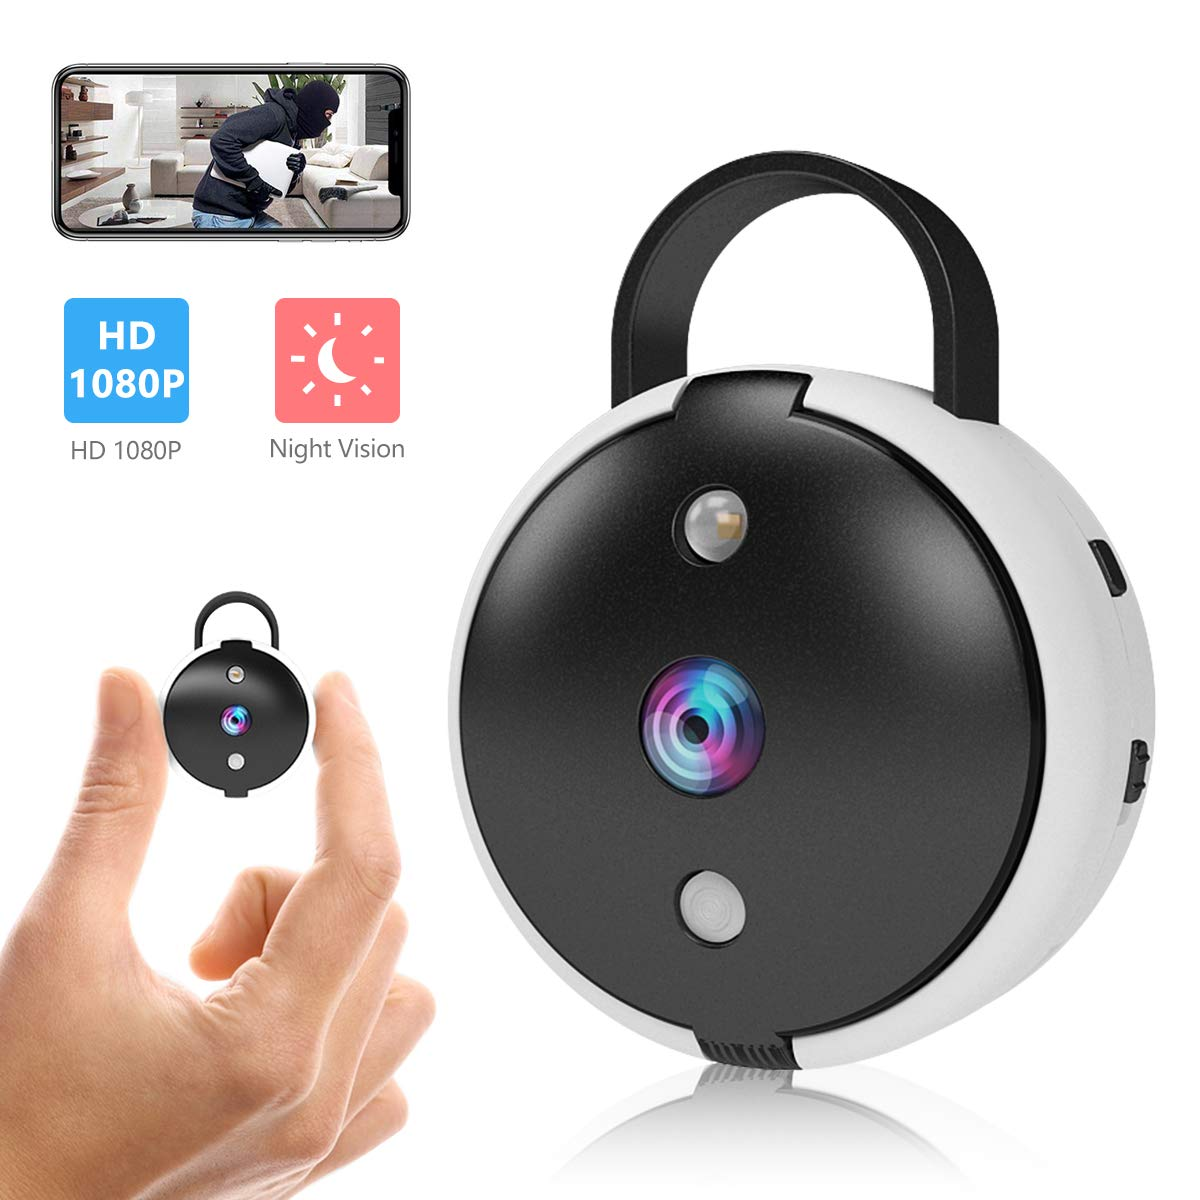 Spy Camera Wireless Hidden Security Camera Mini Portable Wi-Fi Cam HD 1080P Covert Secret Nanny Cameras for Home, Office Monitor Video Recorder Live Streaming via Android/iOS APP